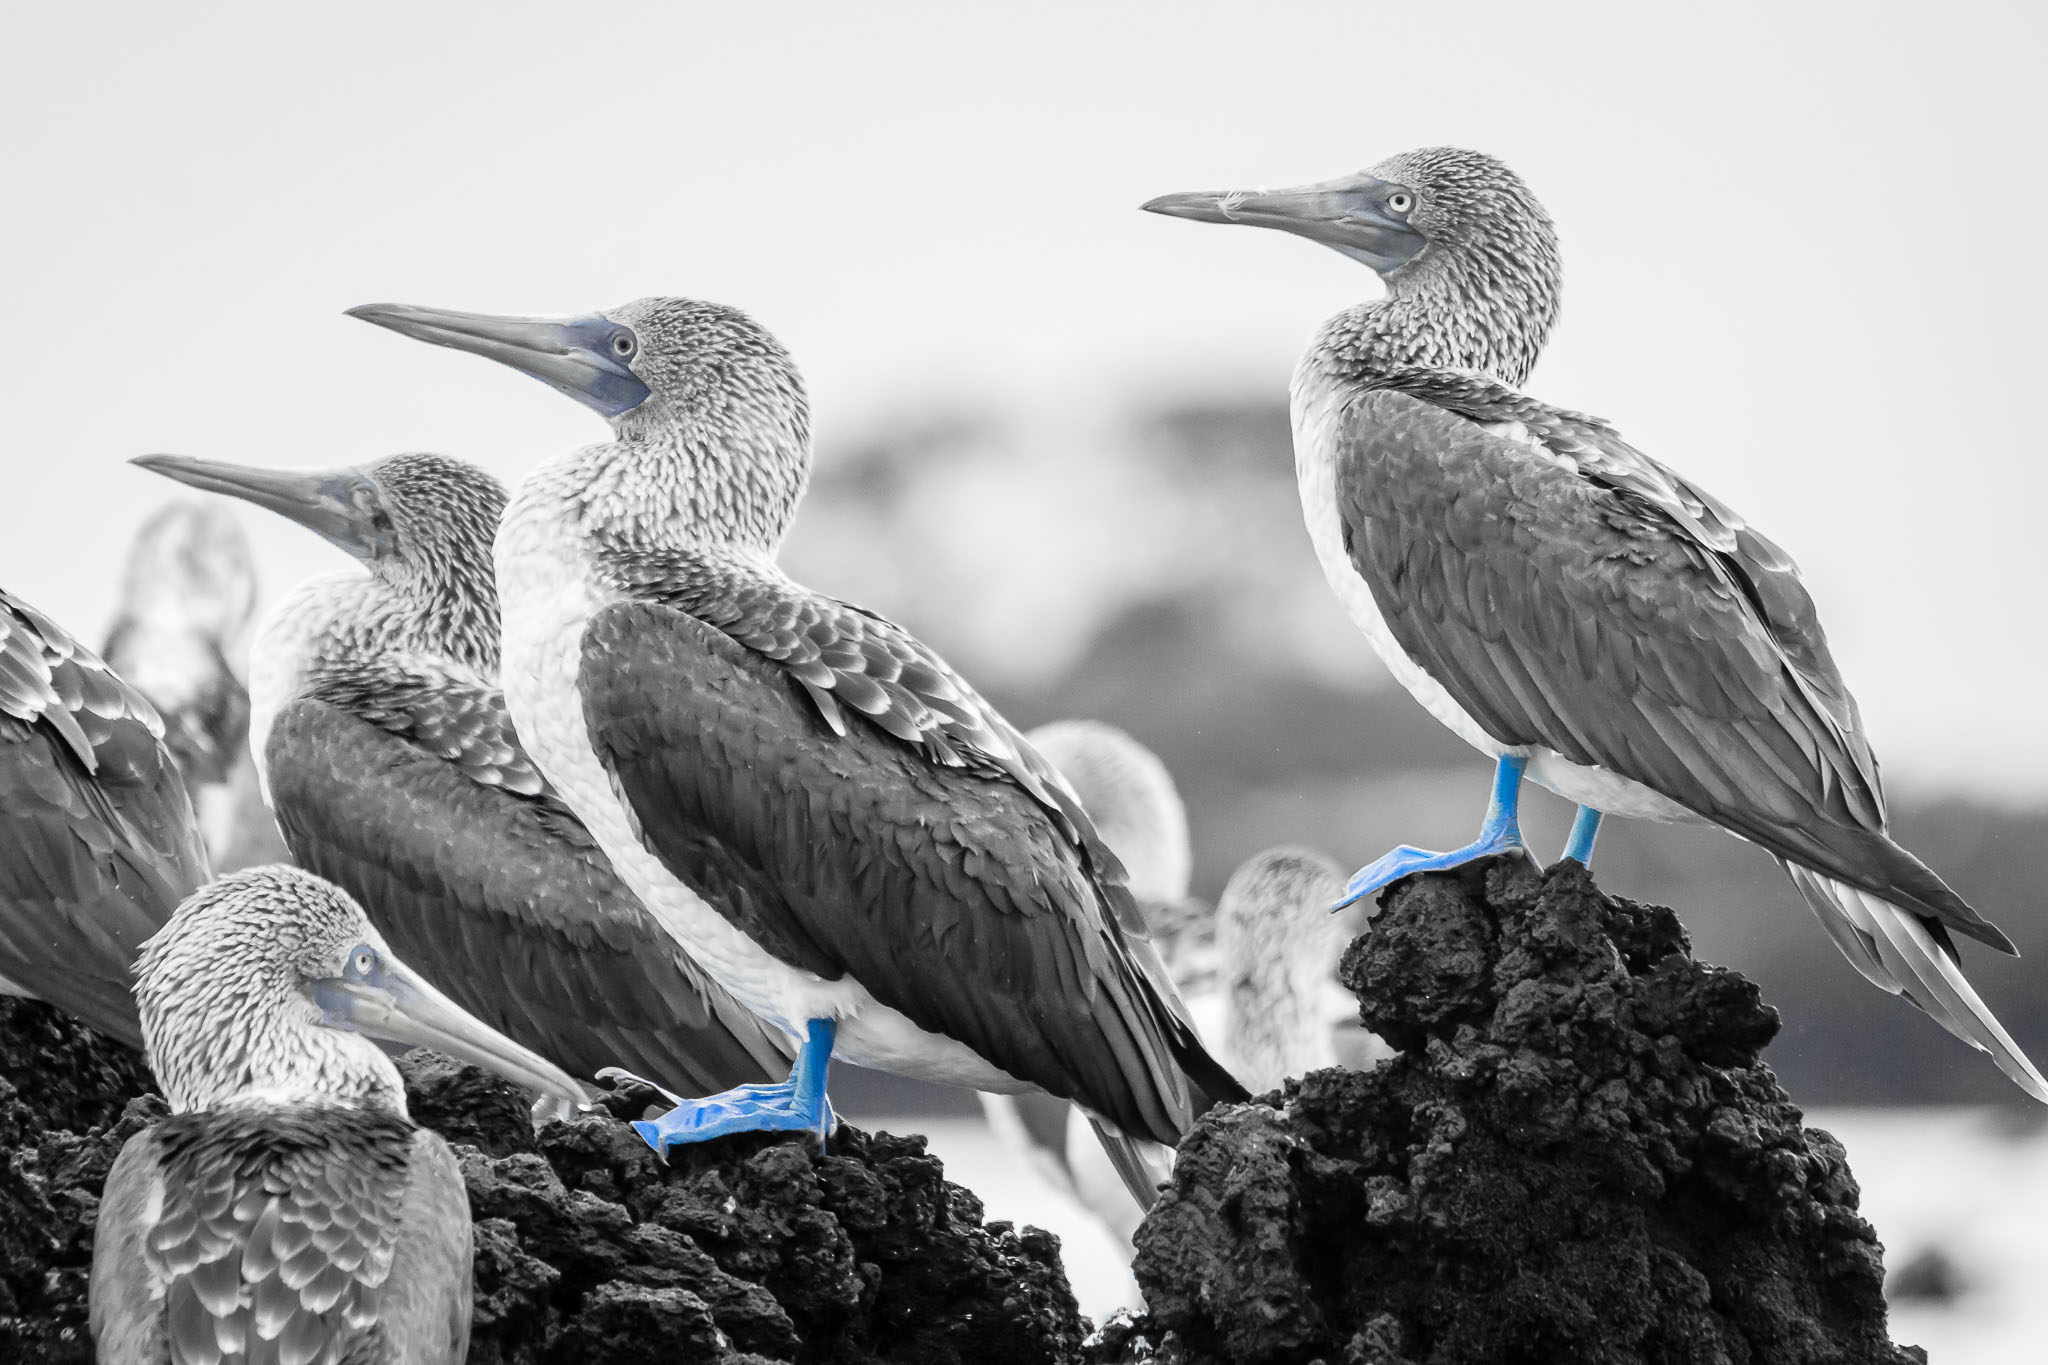 I don't do a lot of editing to my photos. Often just black and white is an 'extreme' edit. However I thought considering the look in B&W and the iconic nature of the birds feet that a selective colour would work for this.